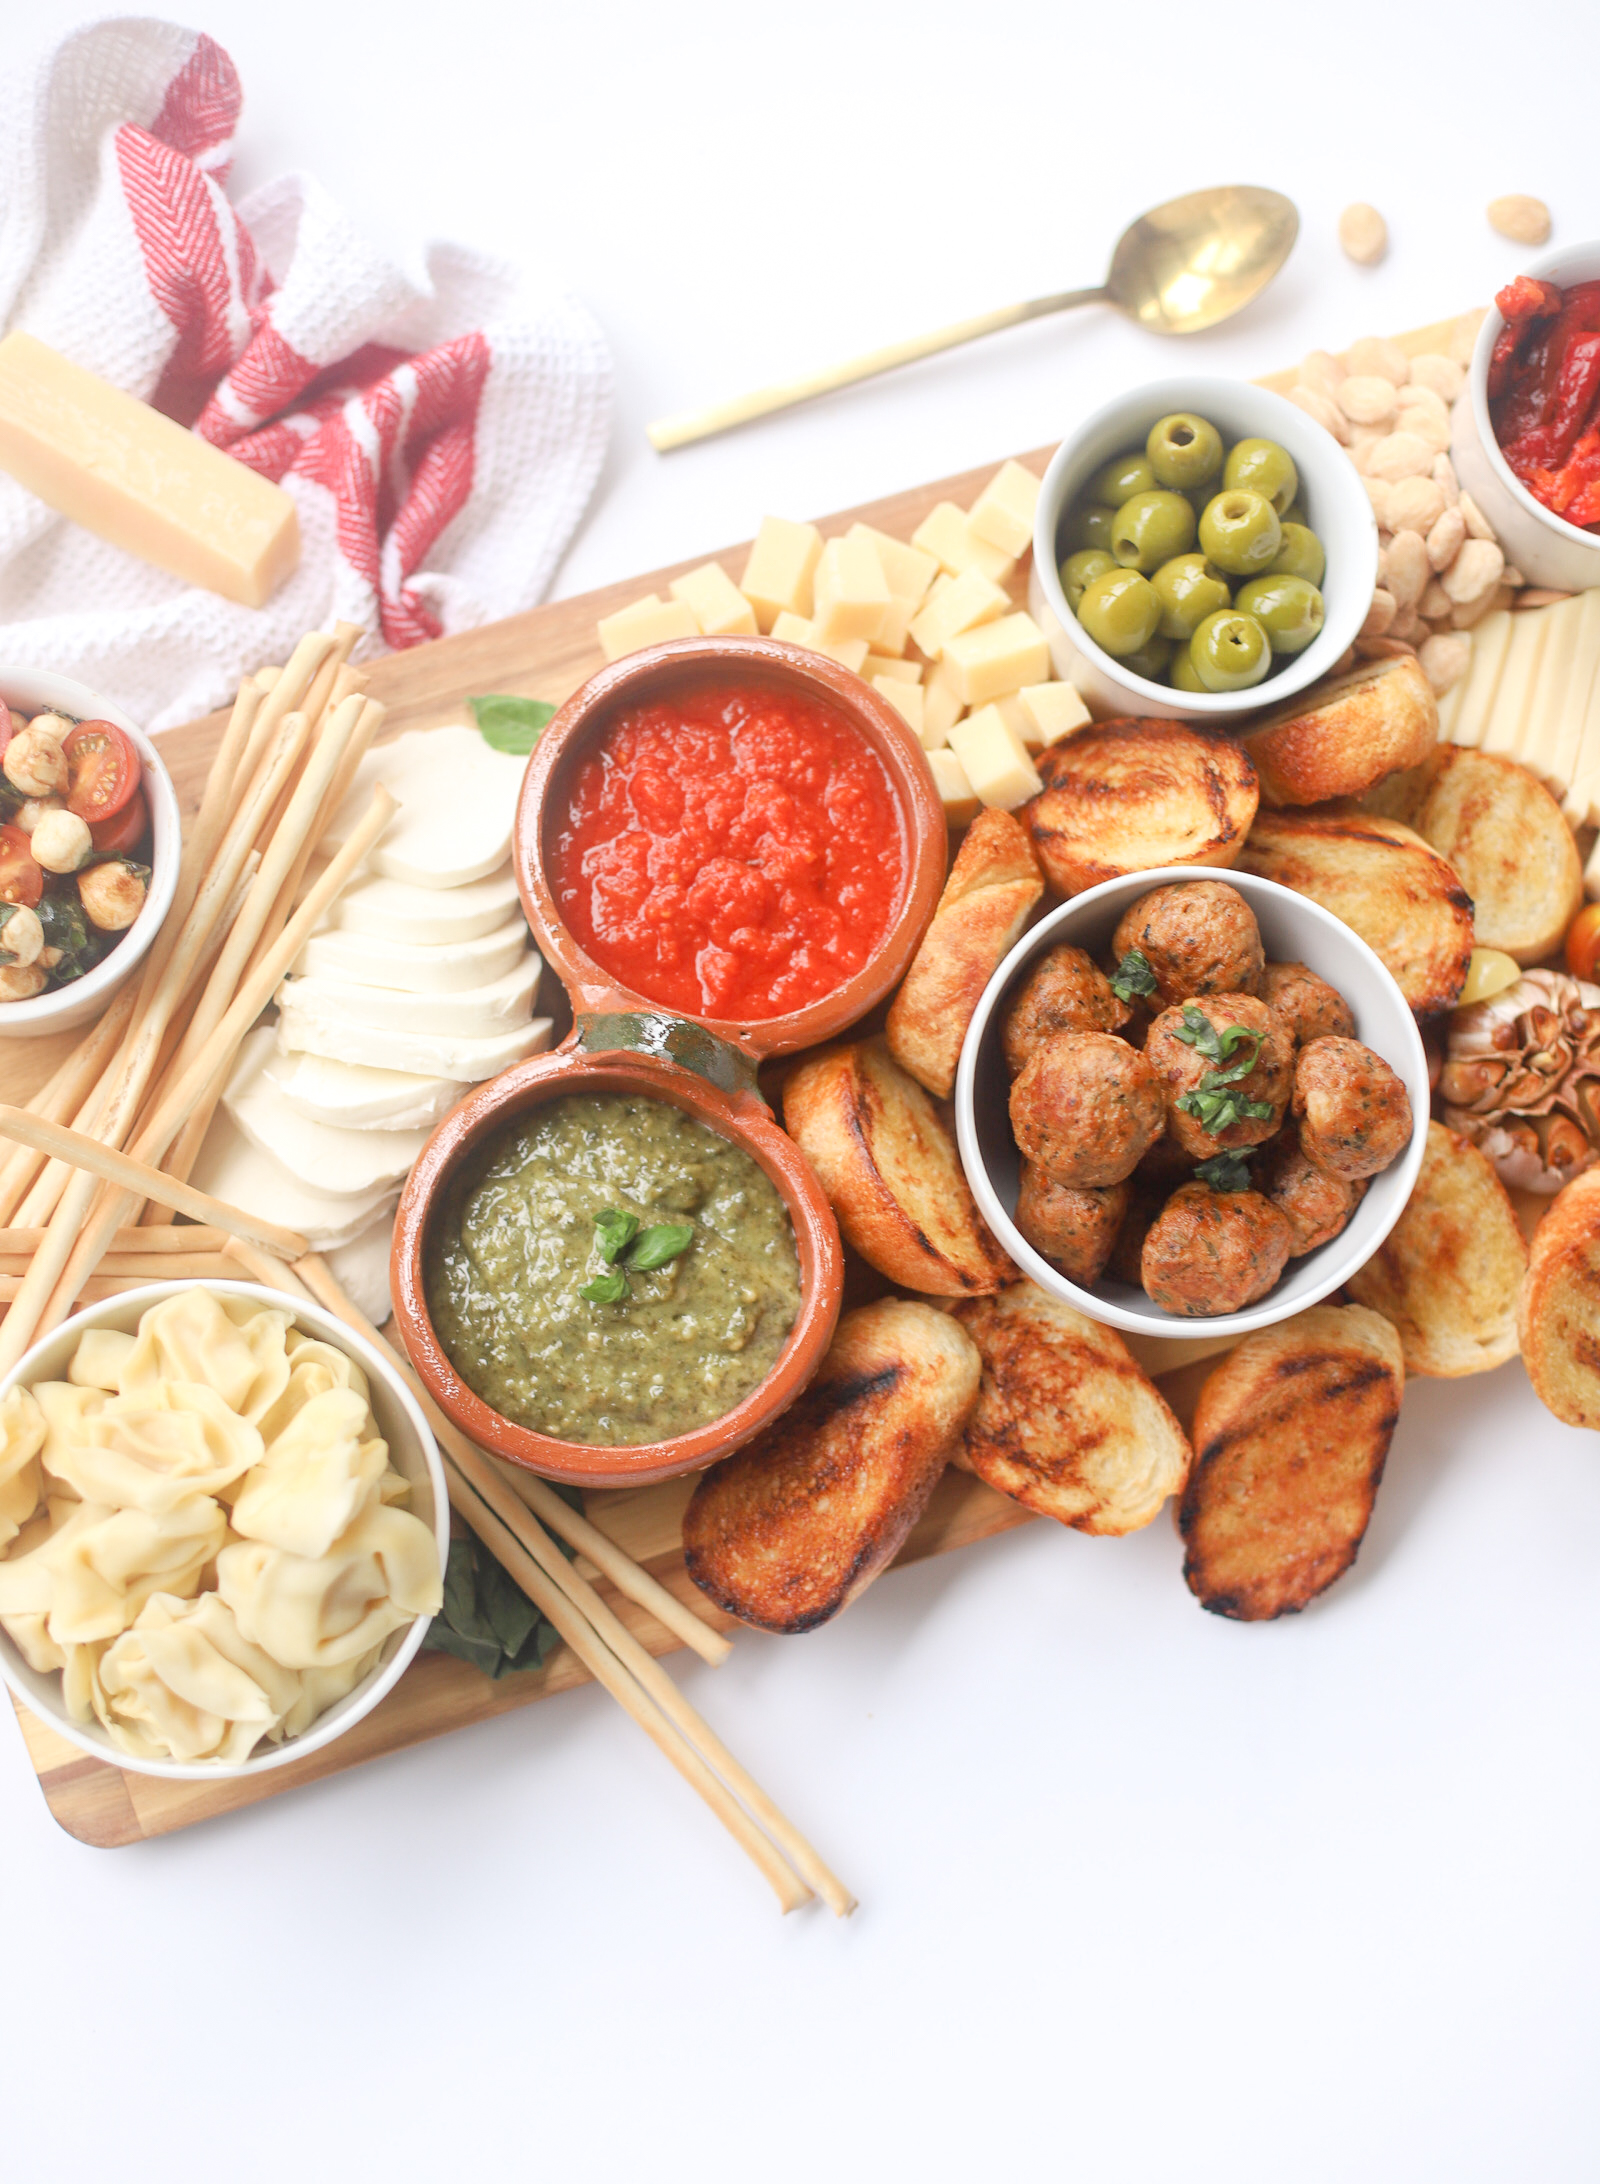 Italian Family Dinner Charcuterie Board - The perfect Communal Snacking Meal for Summer - GLITTERINC.COM